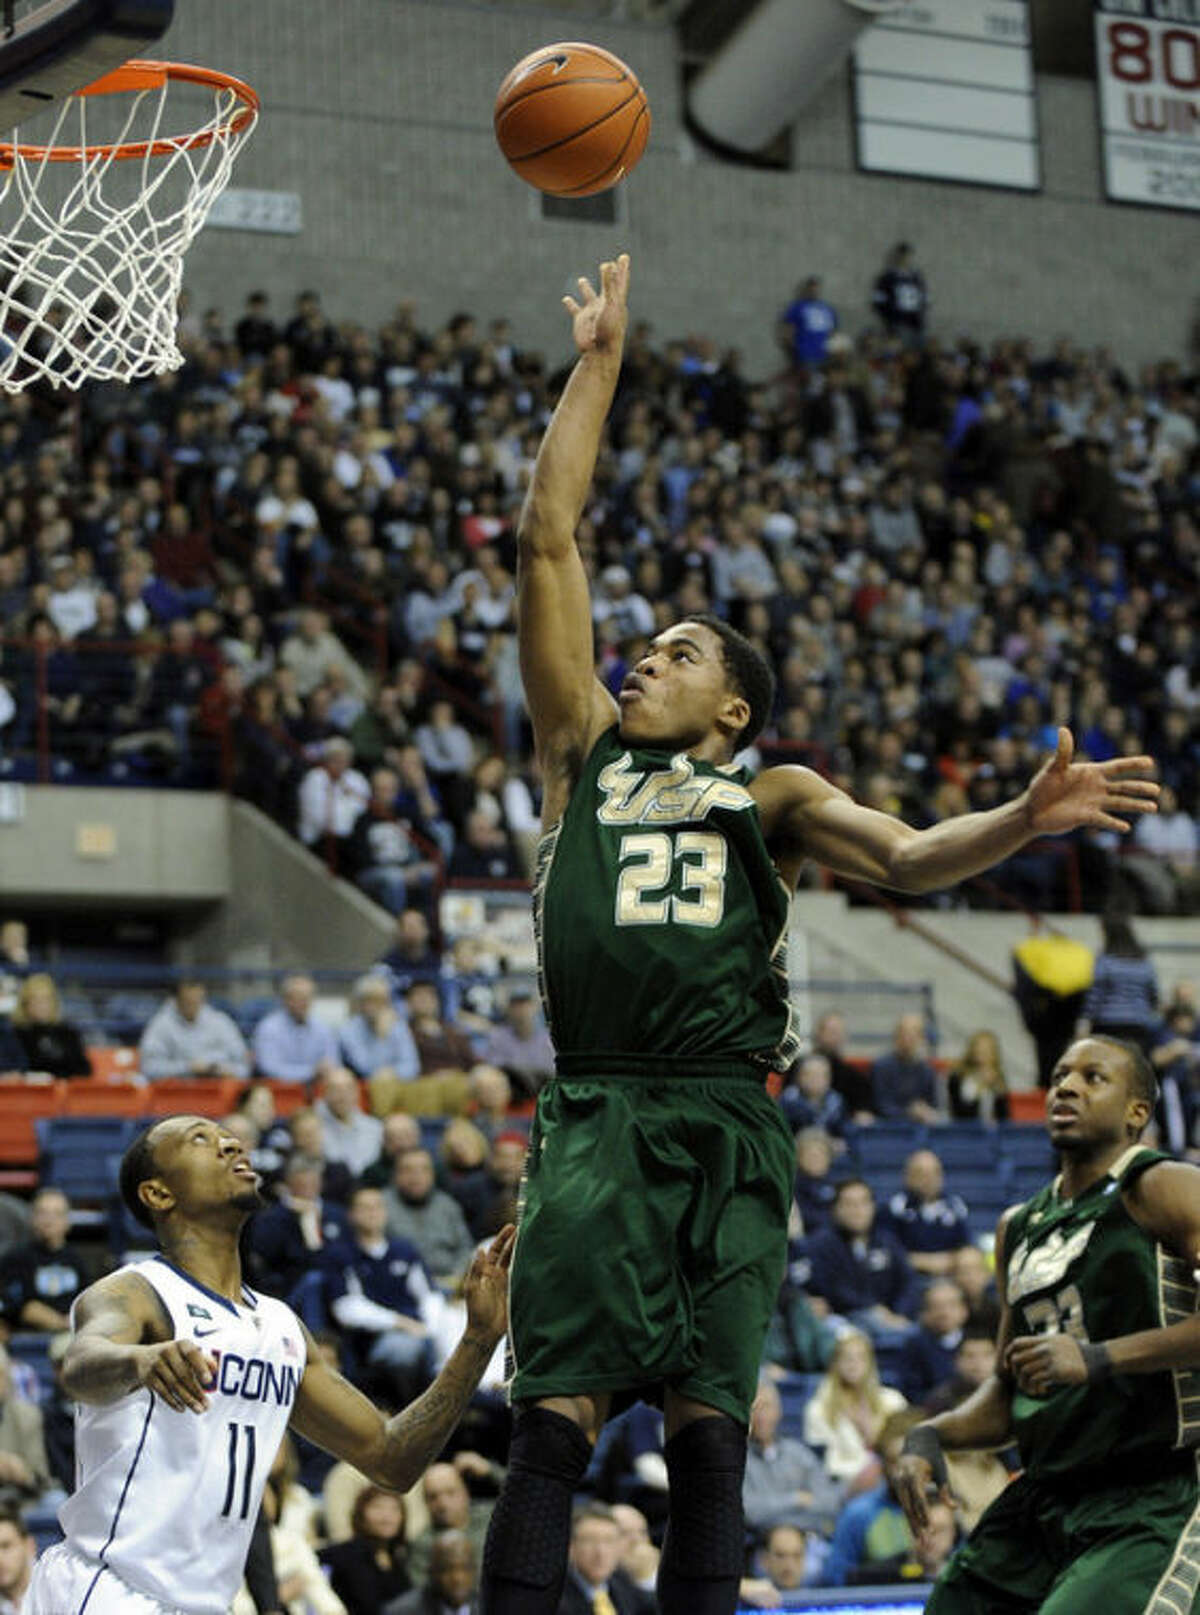 South Florida's Javontae Hawkins, right, shoots over Connecticut's Ryan Boatright during the first half of an NCAA college basketball game in Storrs, Conn., Sunday, Feb. 3, 2013. (AP Photo/Fred Beckham)